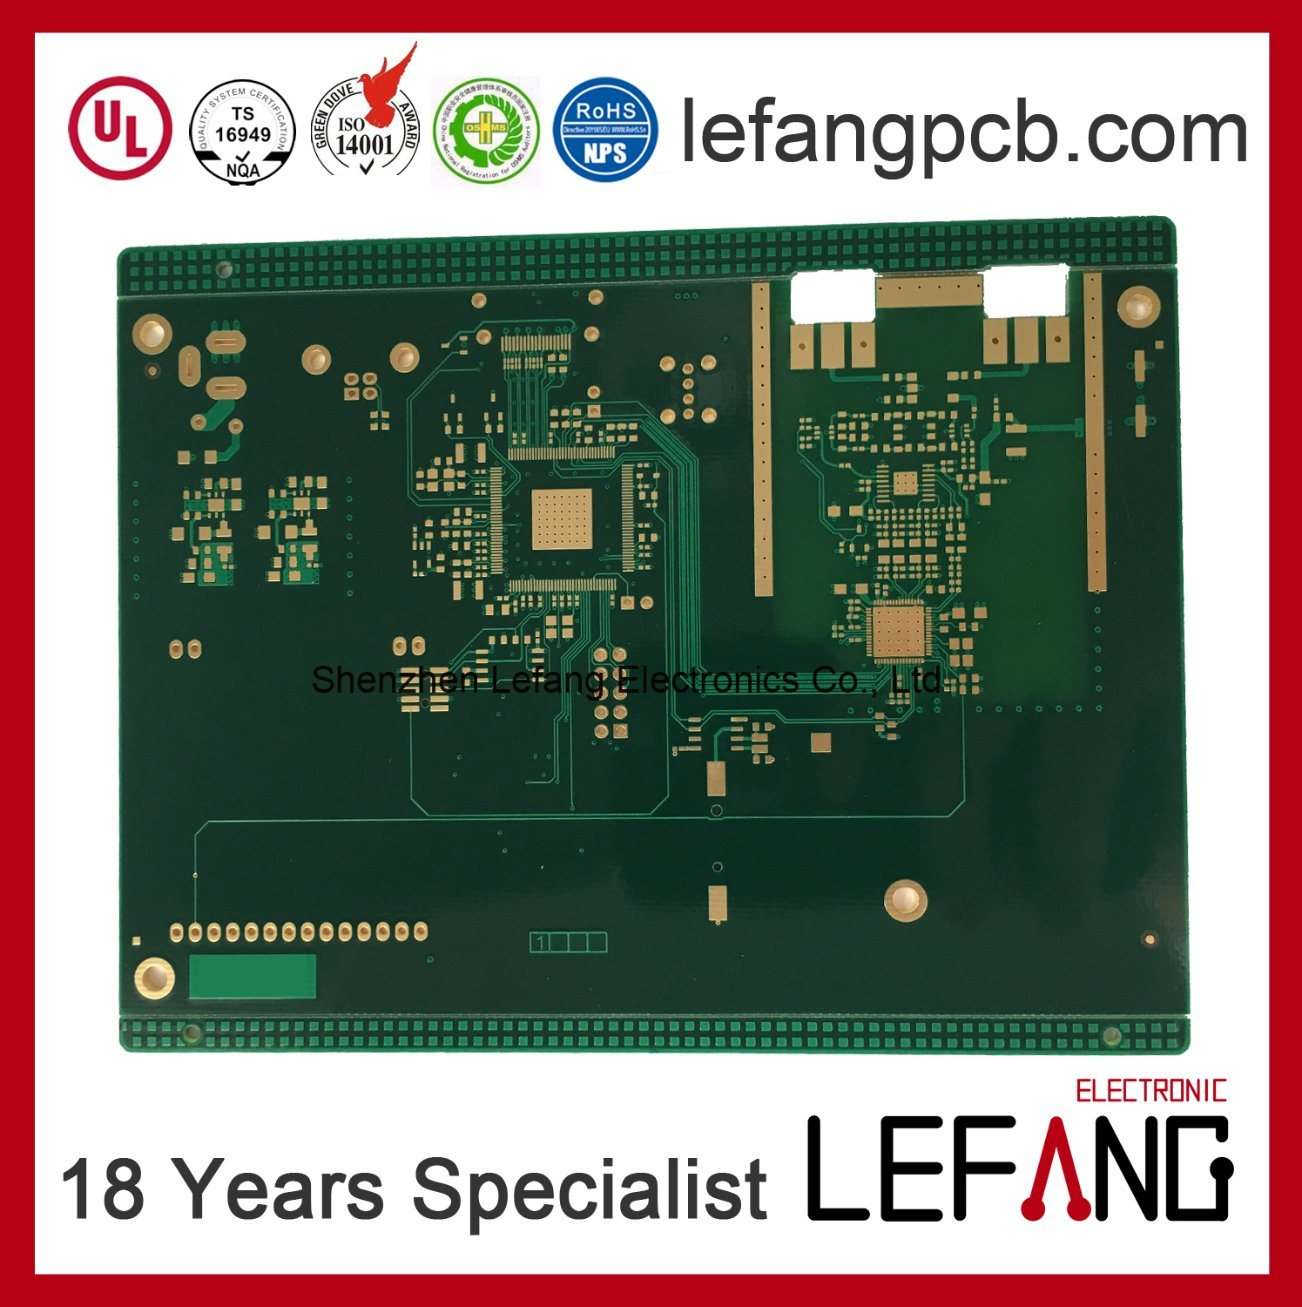 Wholesale Pcb Manufacturer Buy Reliable From Shenzhen Oem Electronic Printed Circuit Board Manufacturerpcb 10 Layers With Rohs Compliance